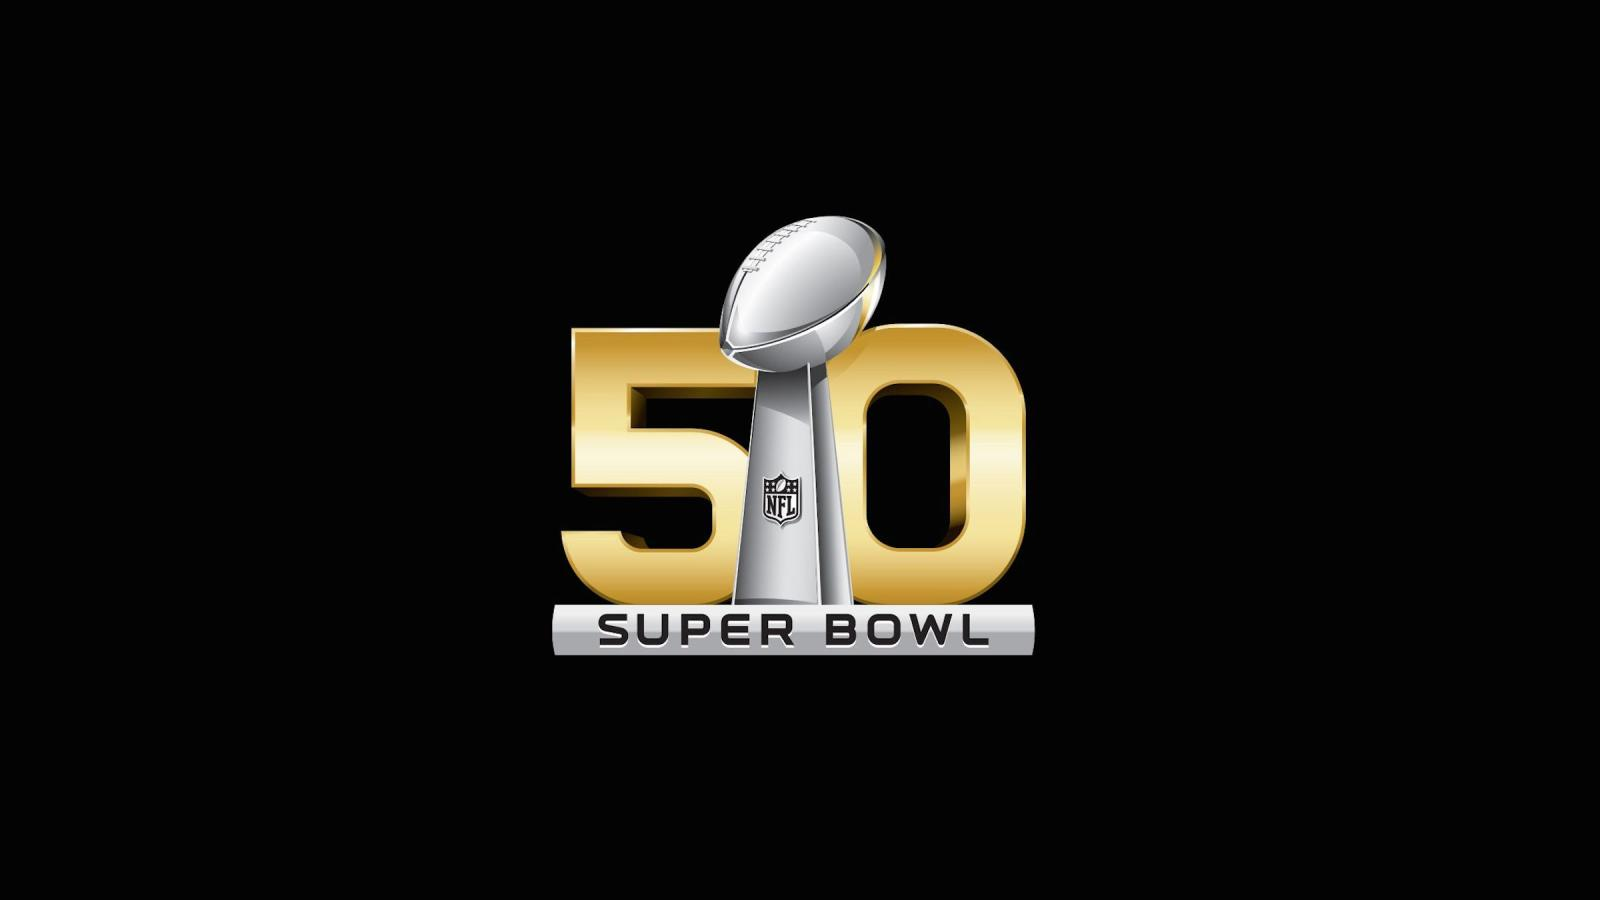 Four Ways To Redesign The Super Bowl Logo Without Losing The Gladiatorial Look Quartz